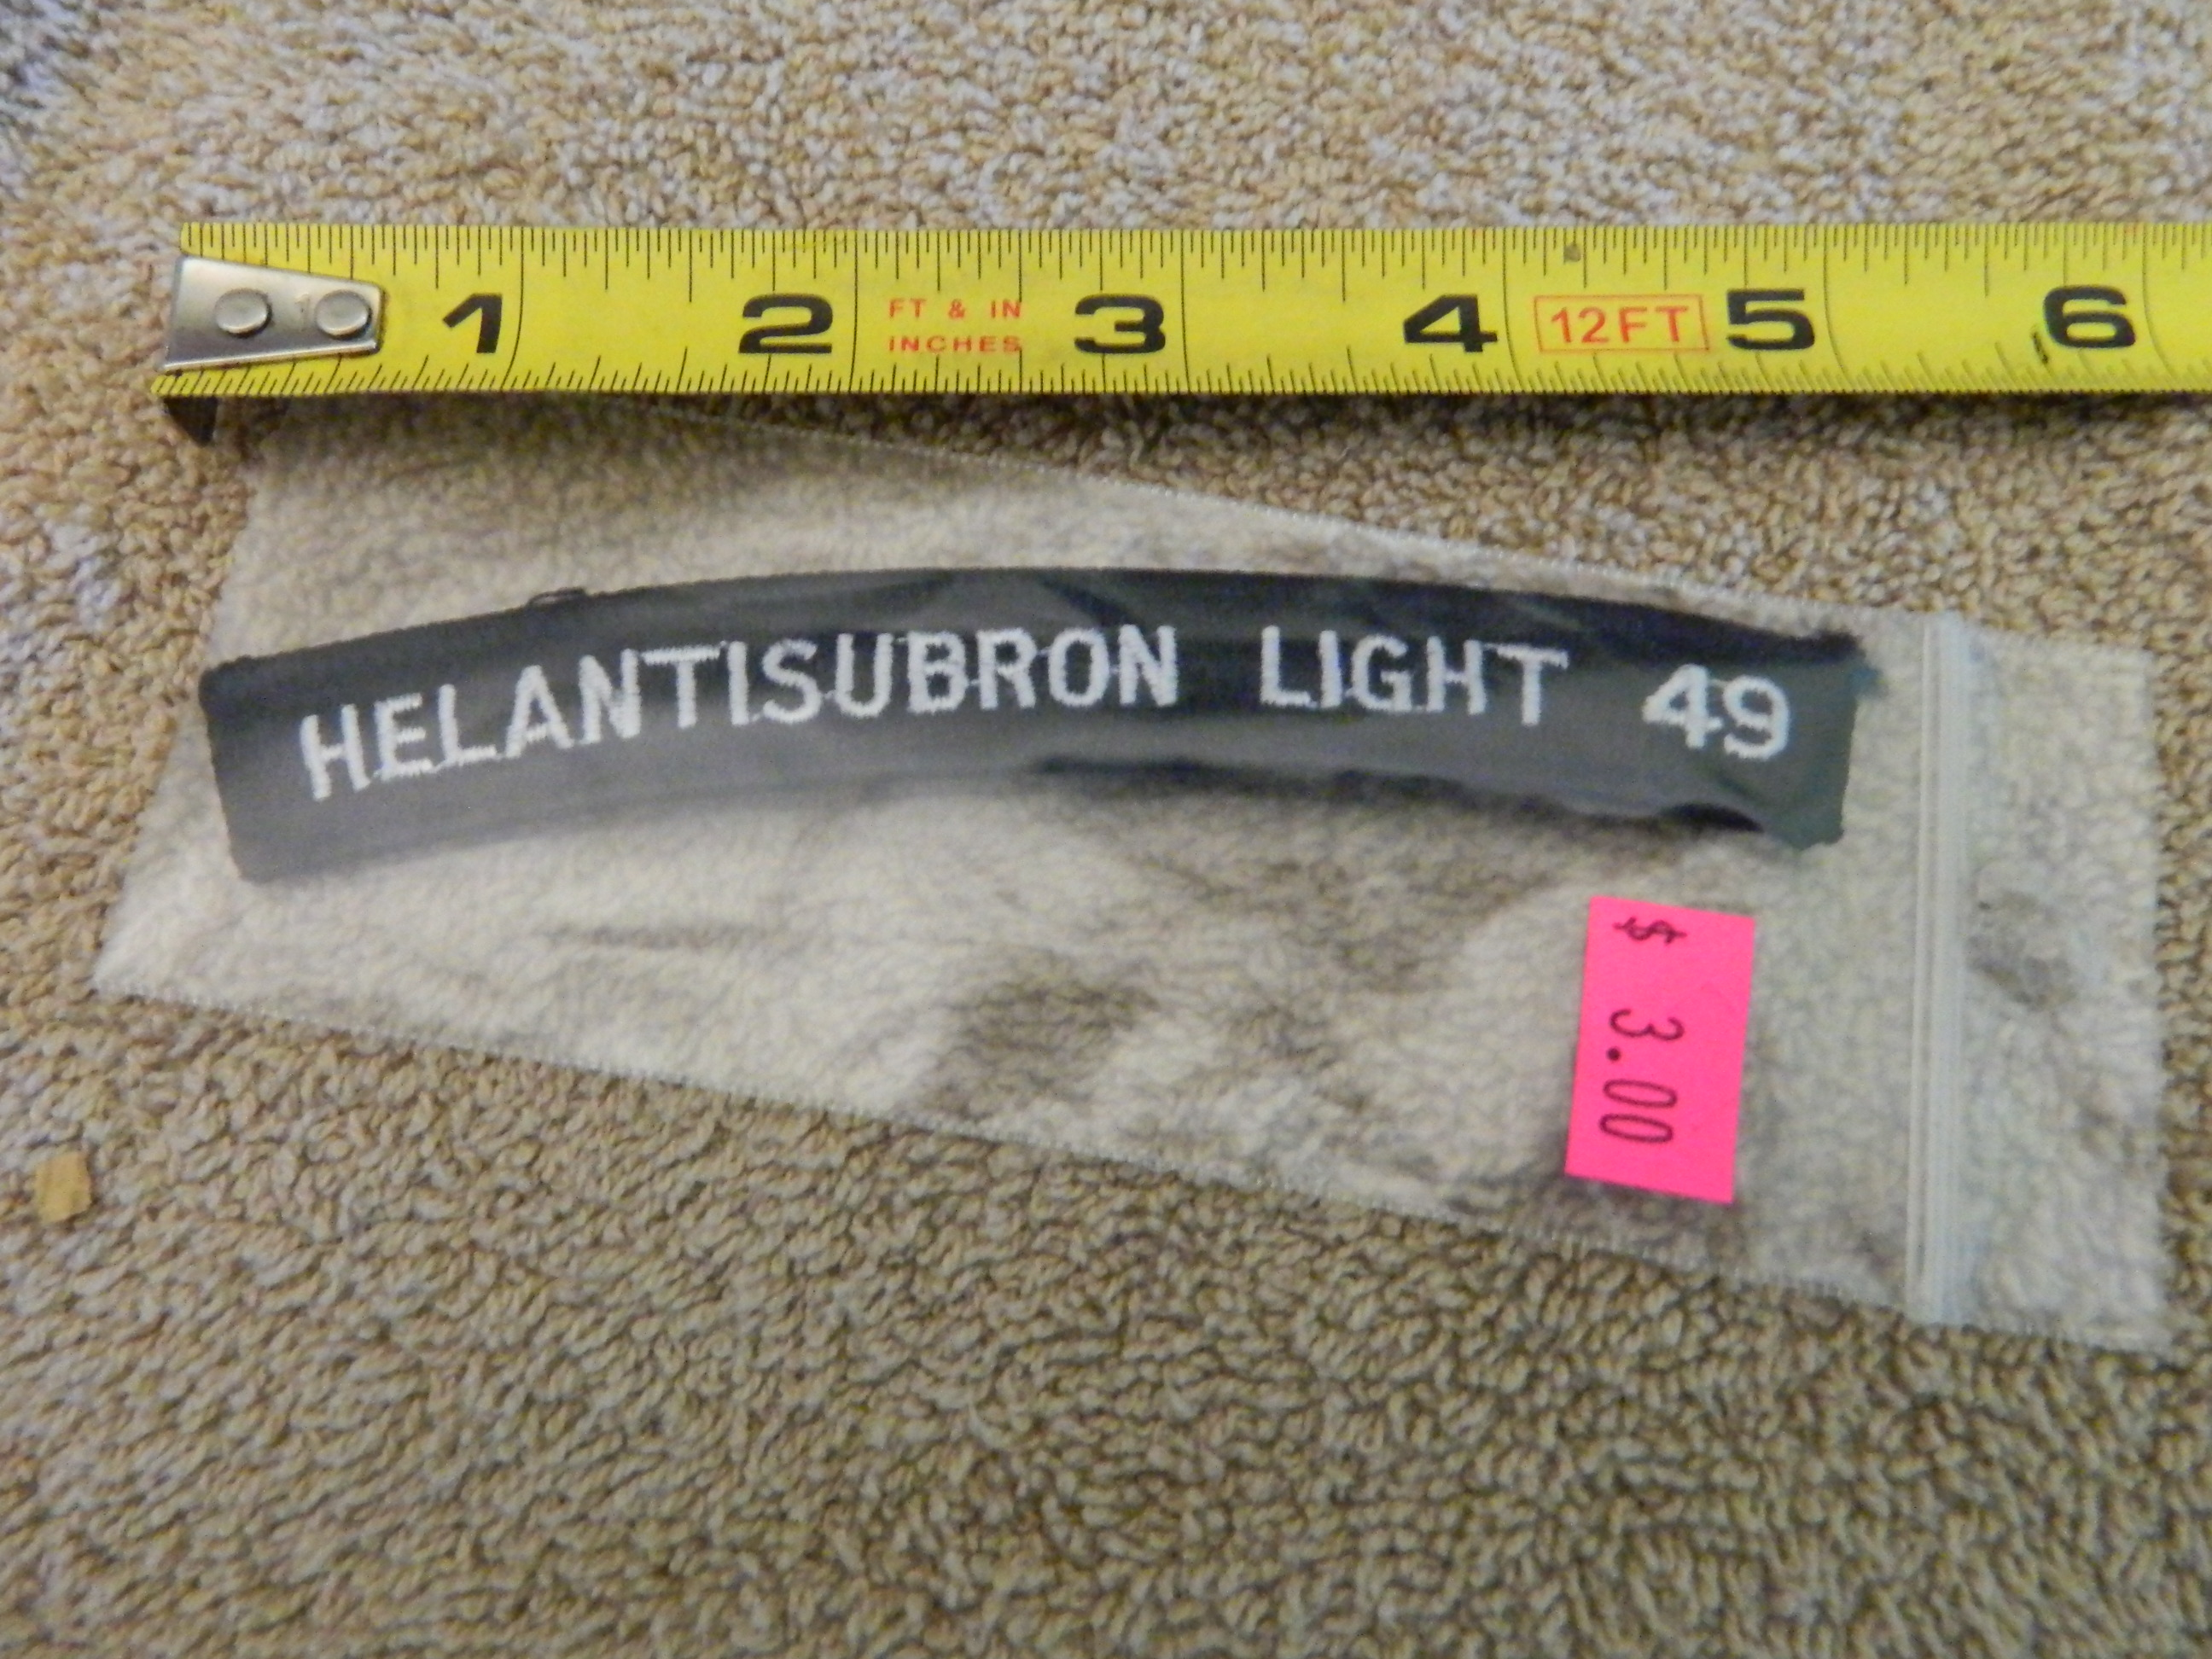 USN Rocker: HELANTISUBRON LIGHT 49